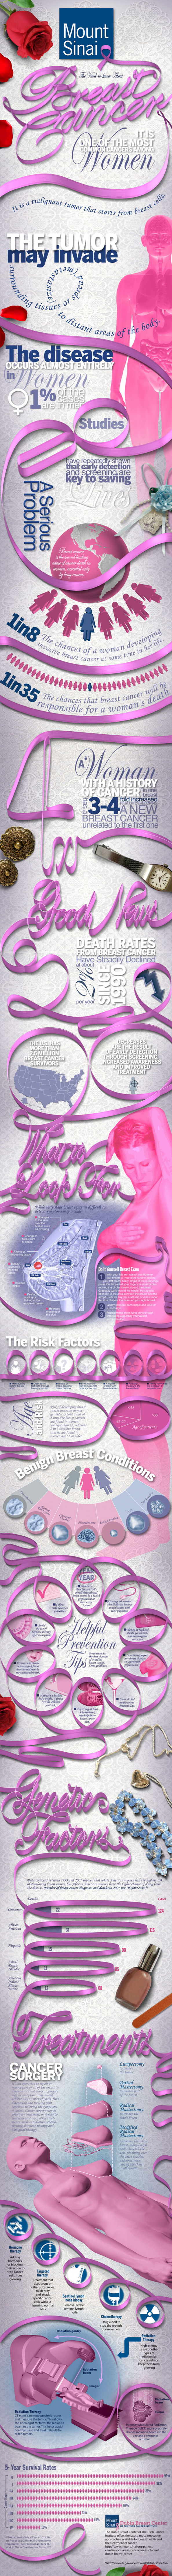 The Need-to-Know About Breast Cancer Infographic